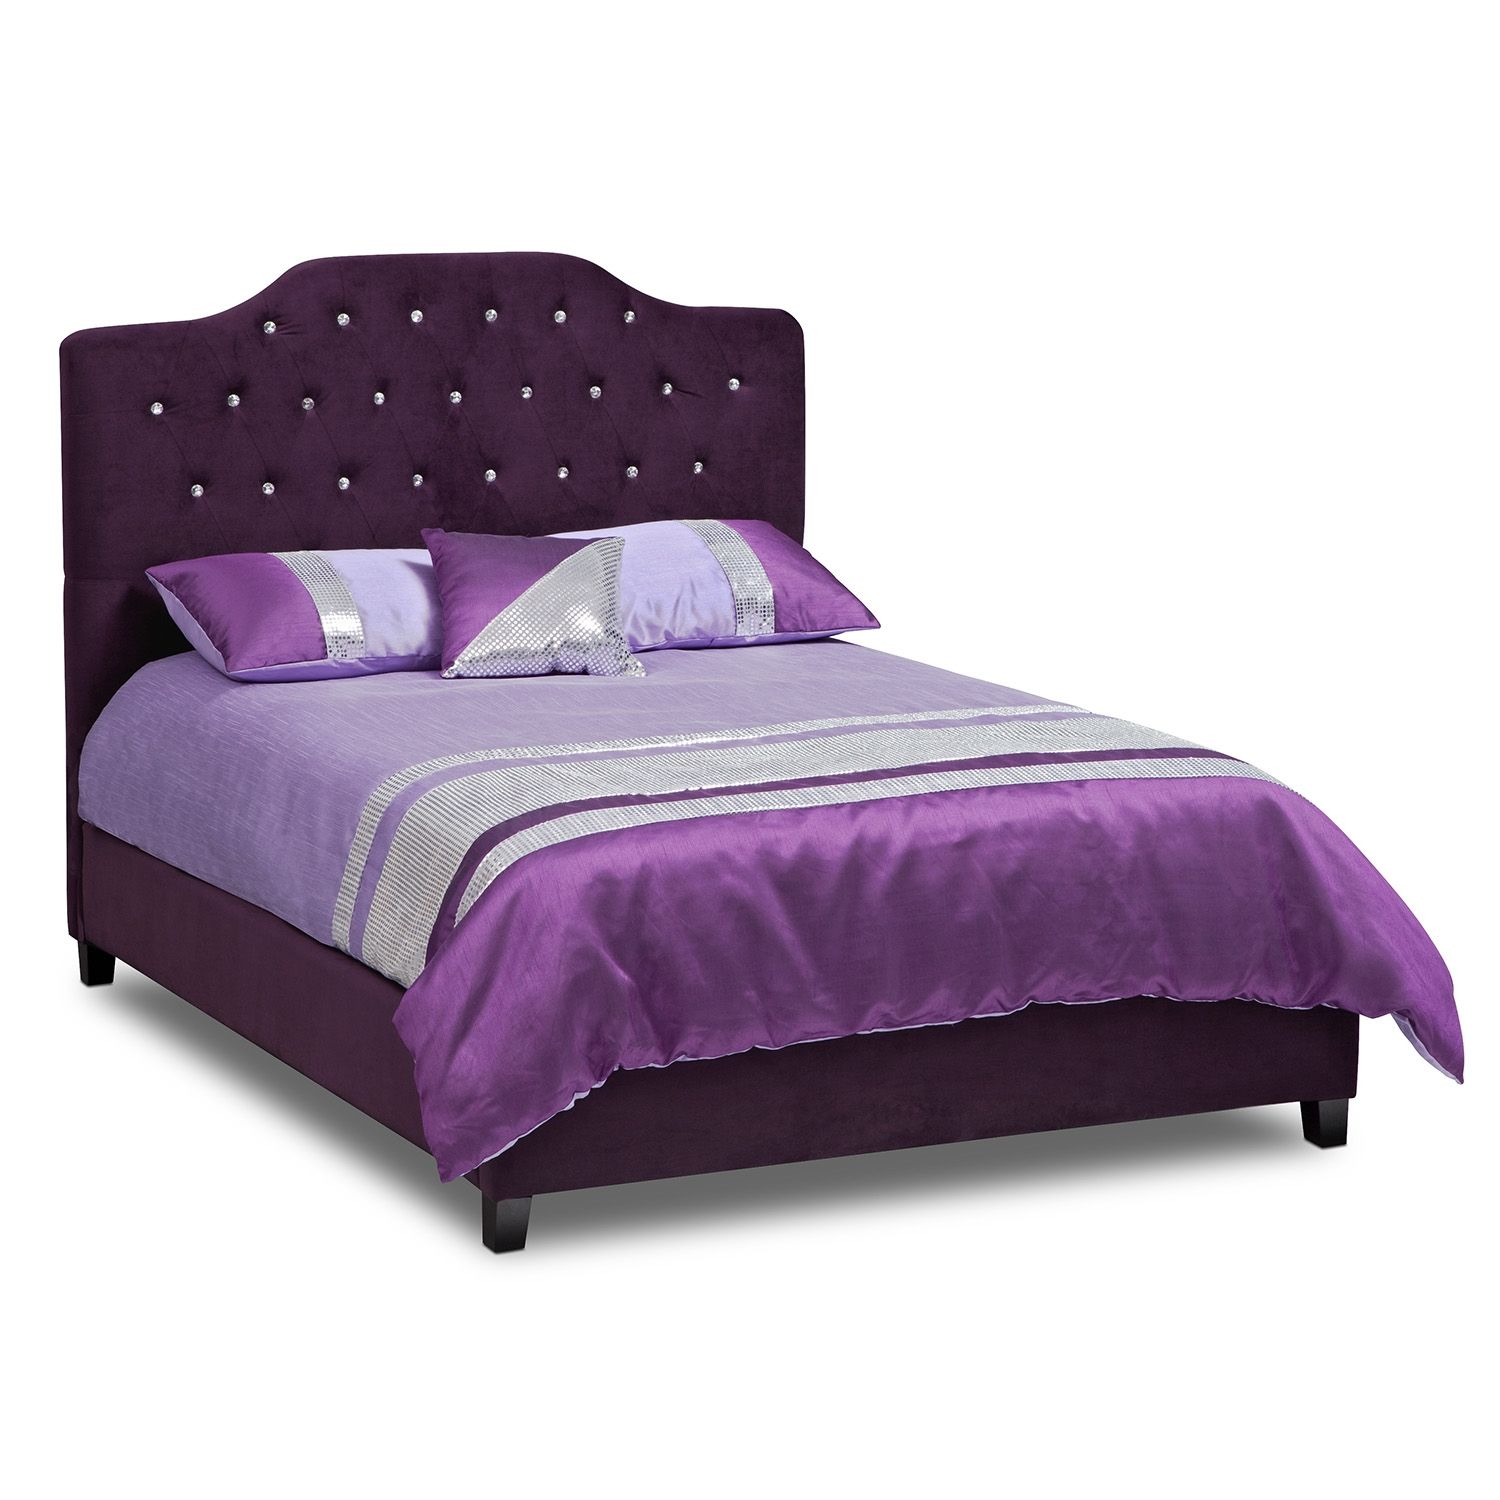 Bedroom furniture valerie ii queen bed glam time for Images of beds for bedroom